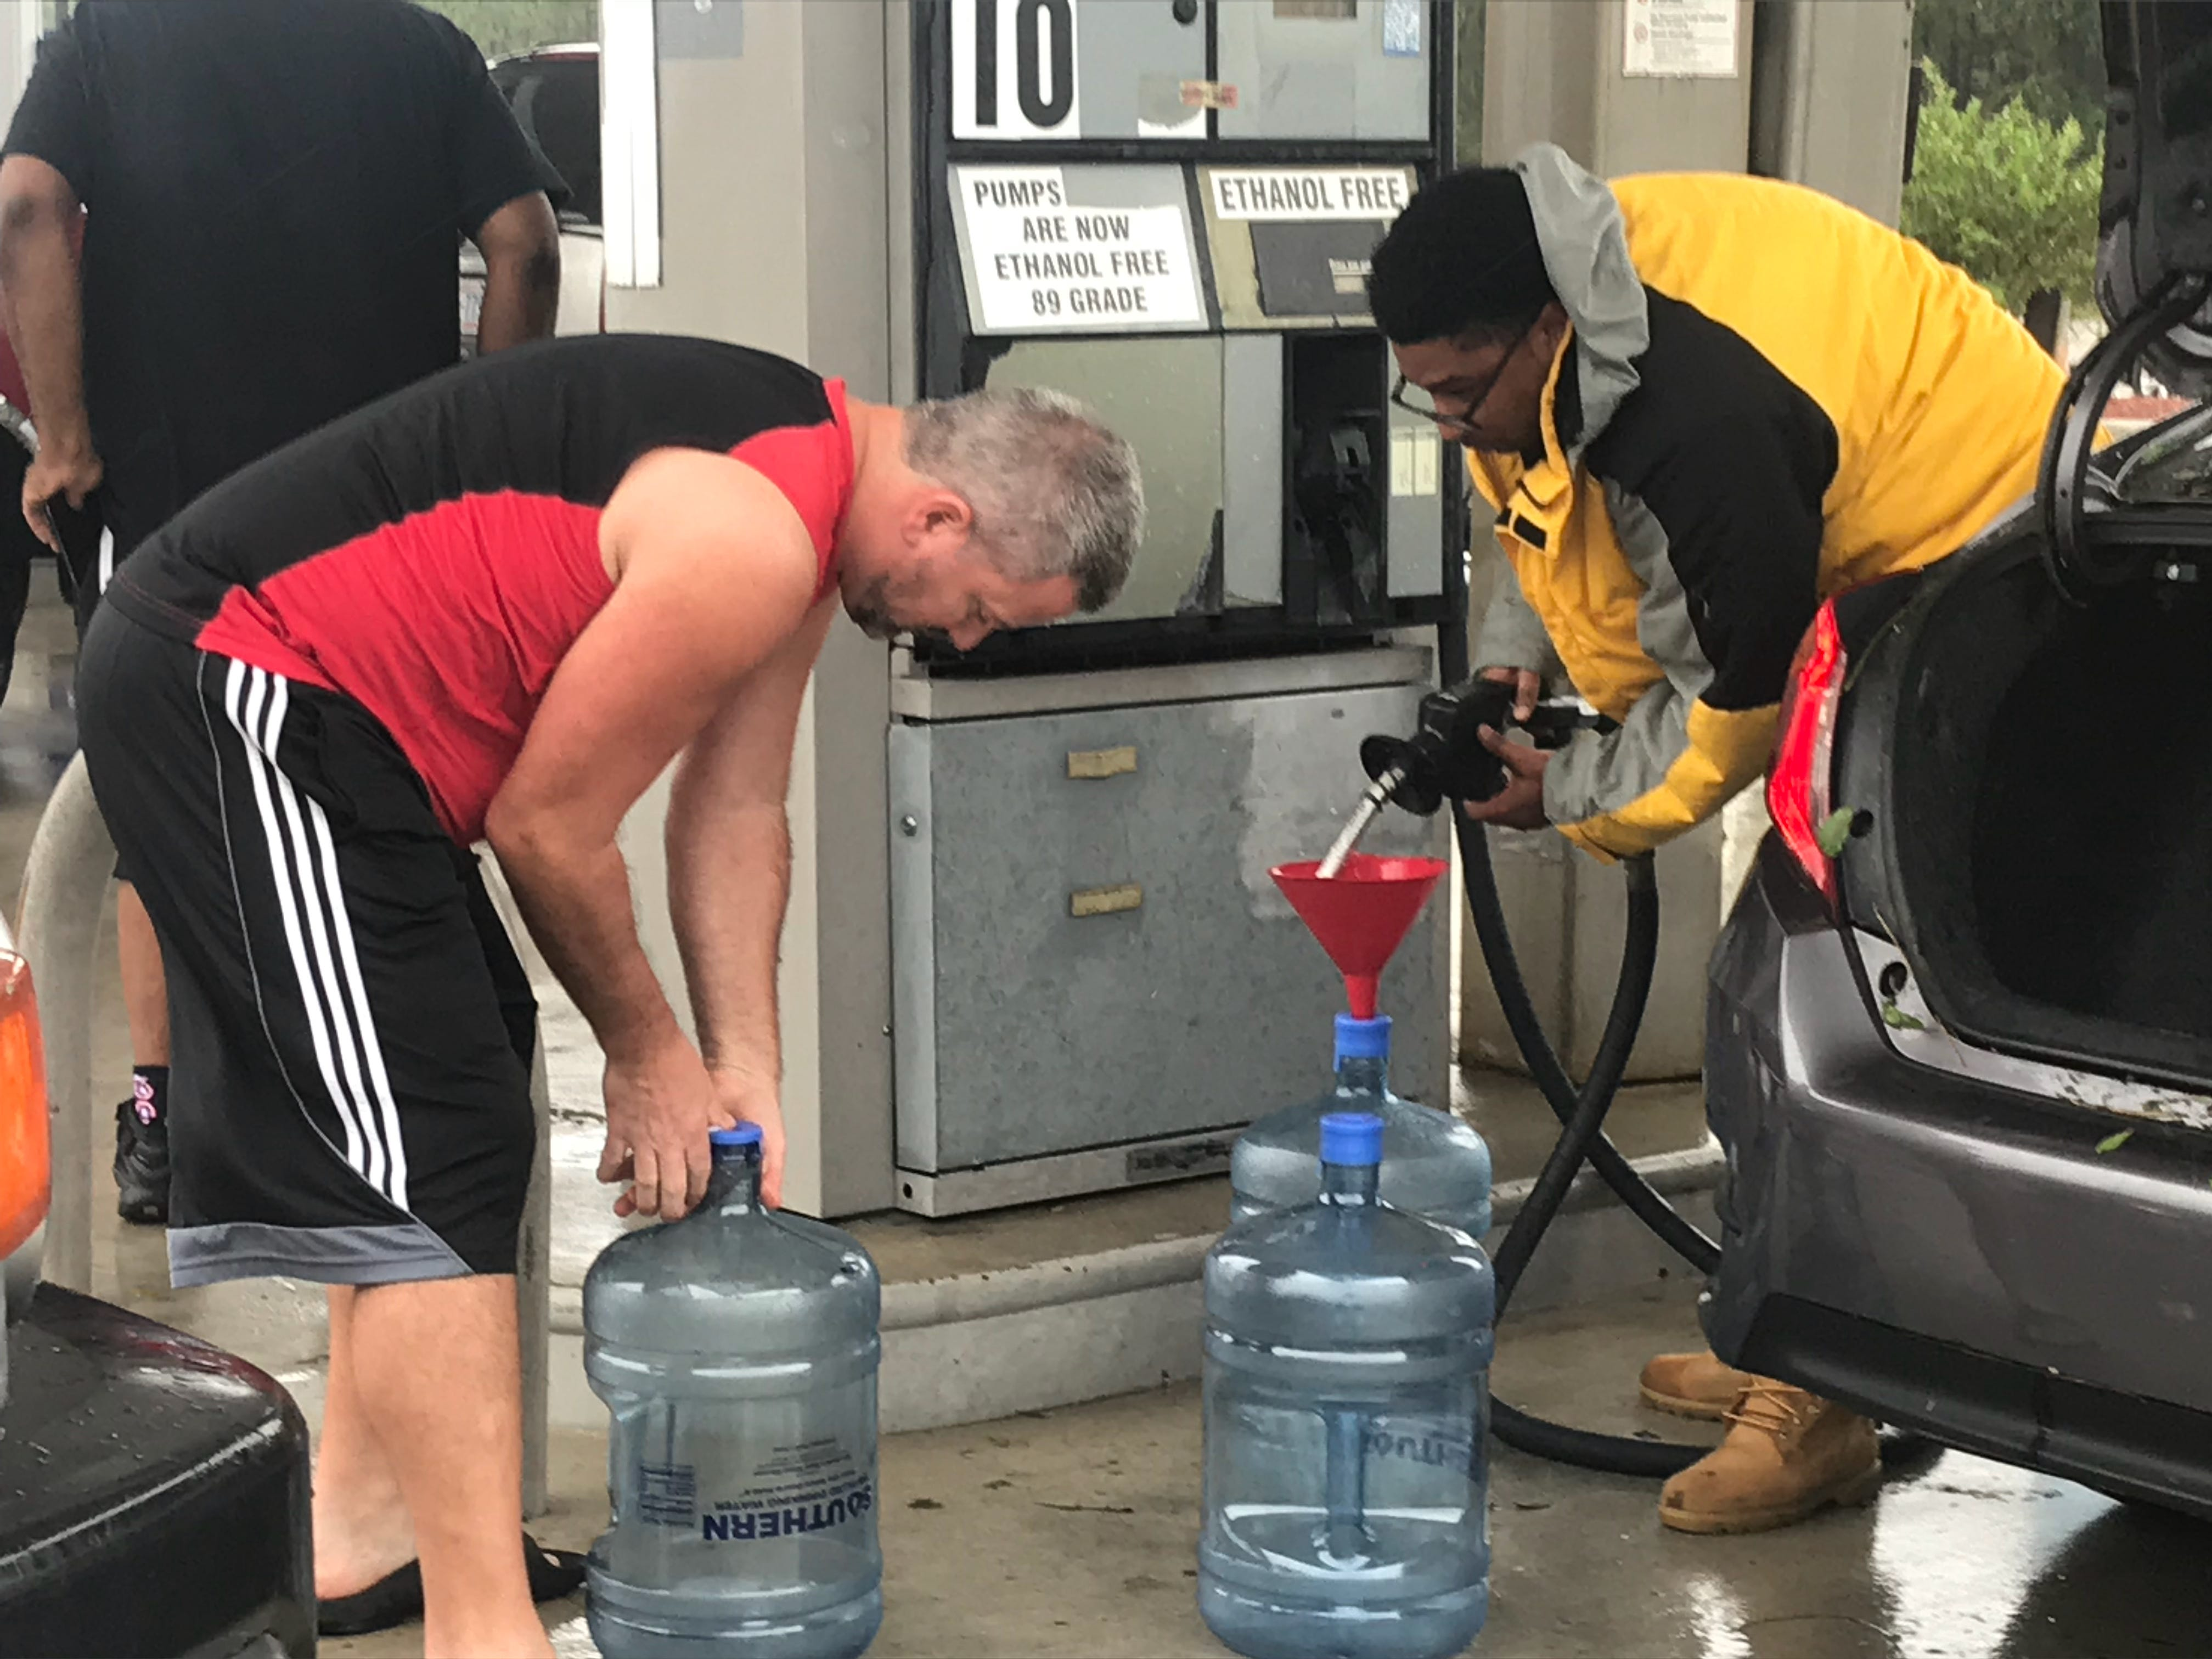 Two men fill water coolers with fuel at Candy's Exxon in Wilmington on Saturday, Sept. 15, 2018.